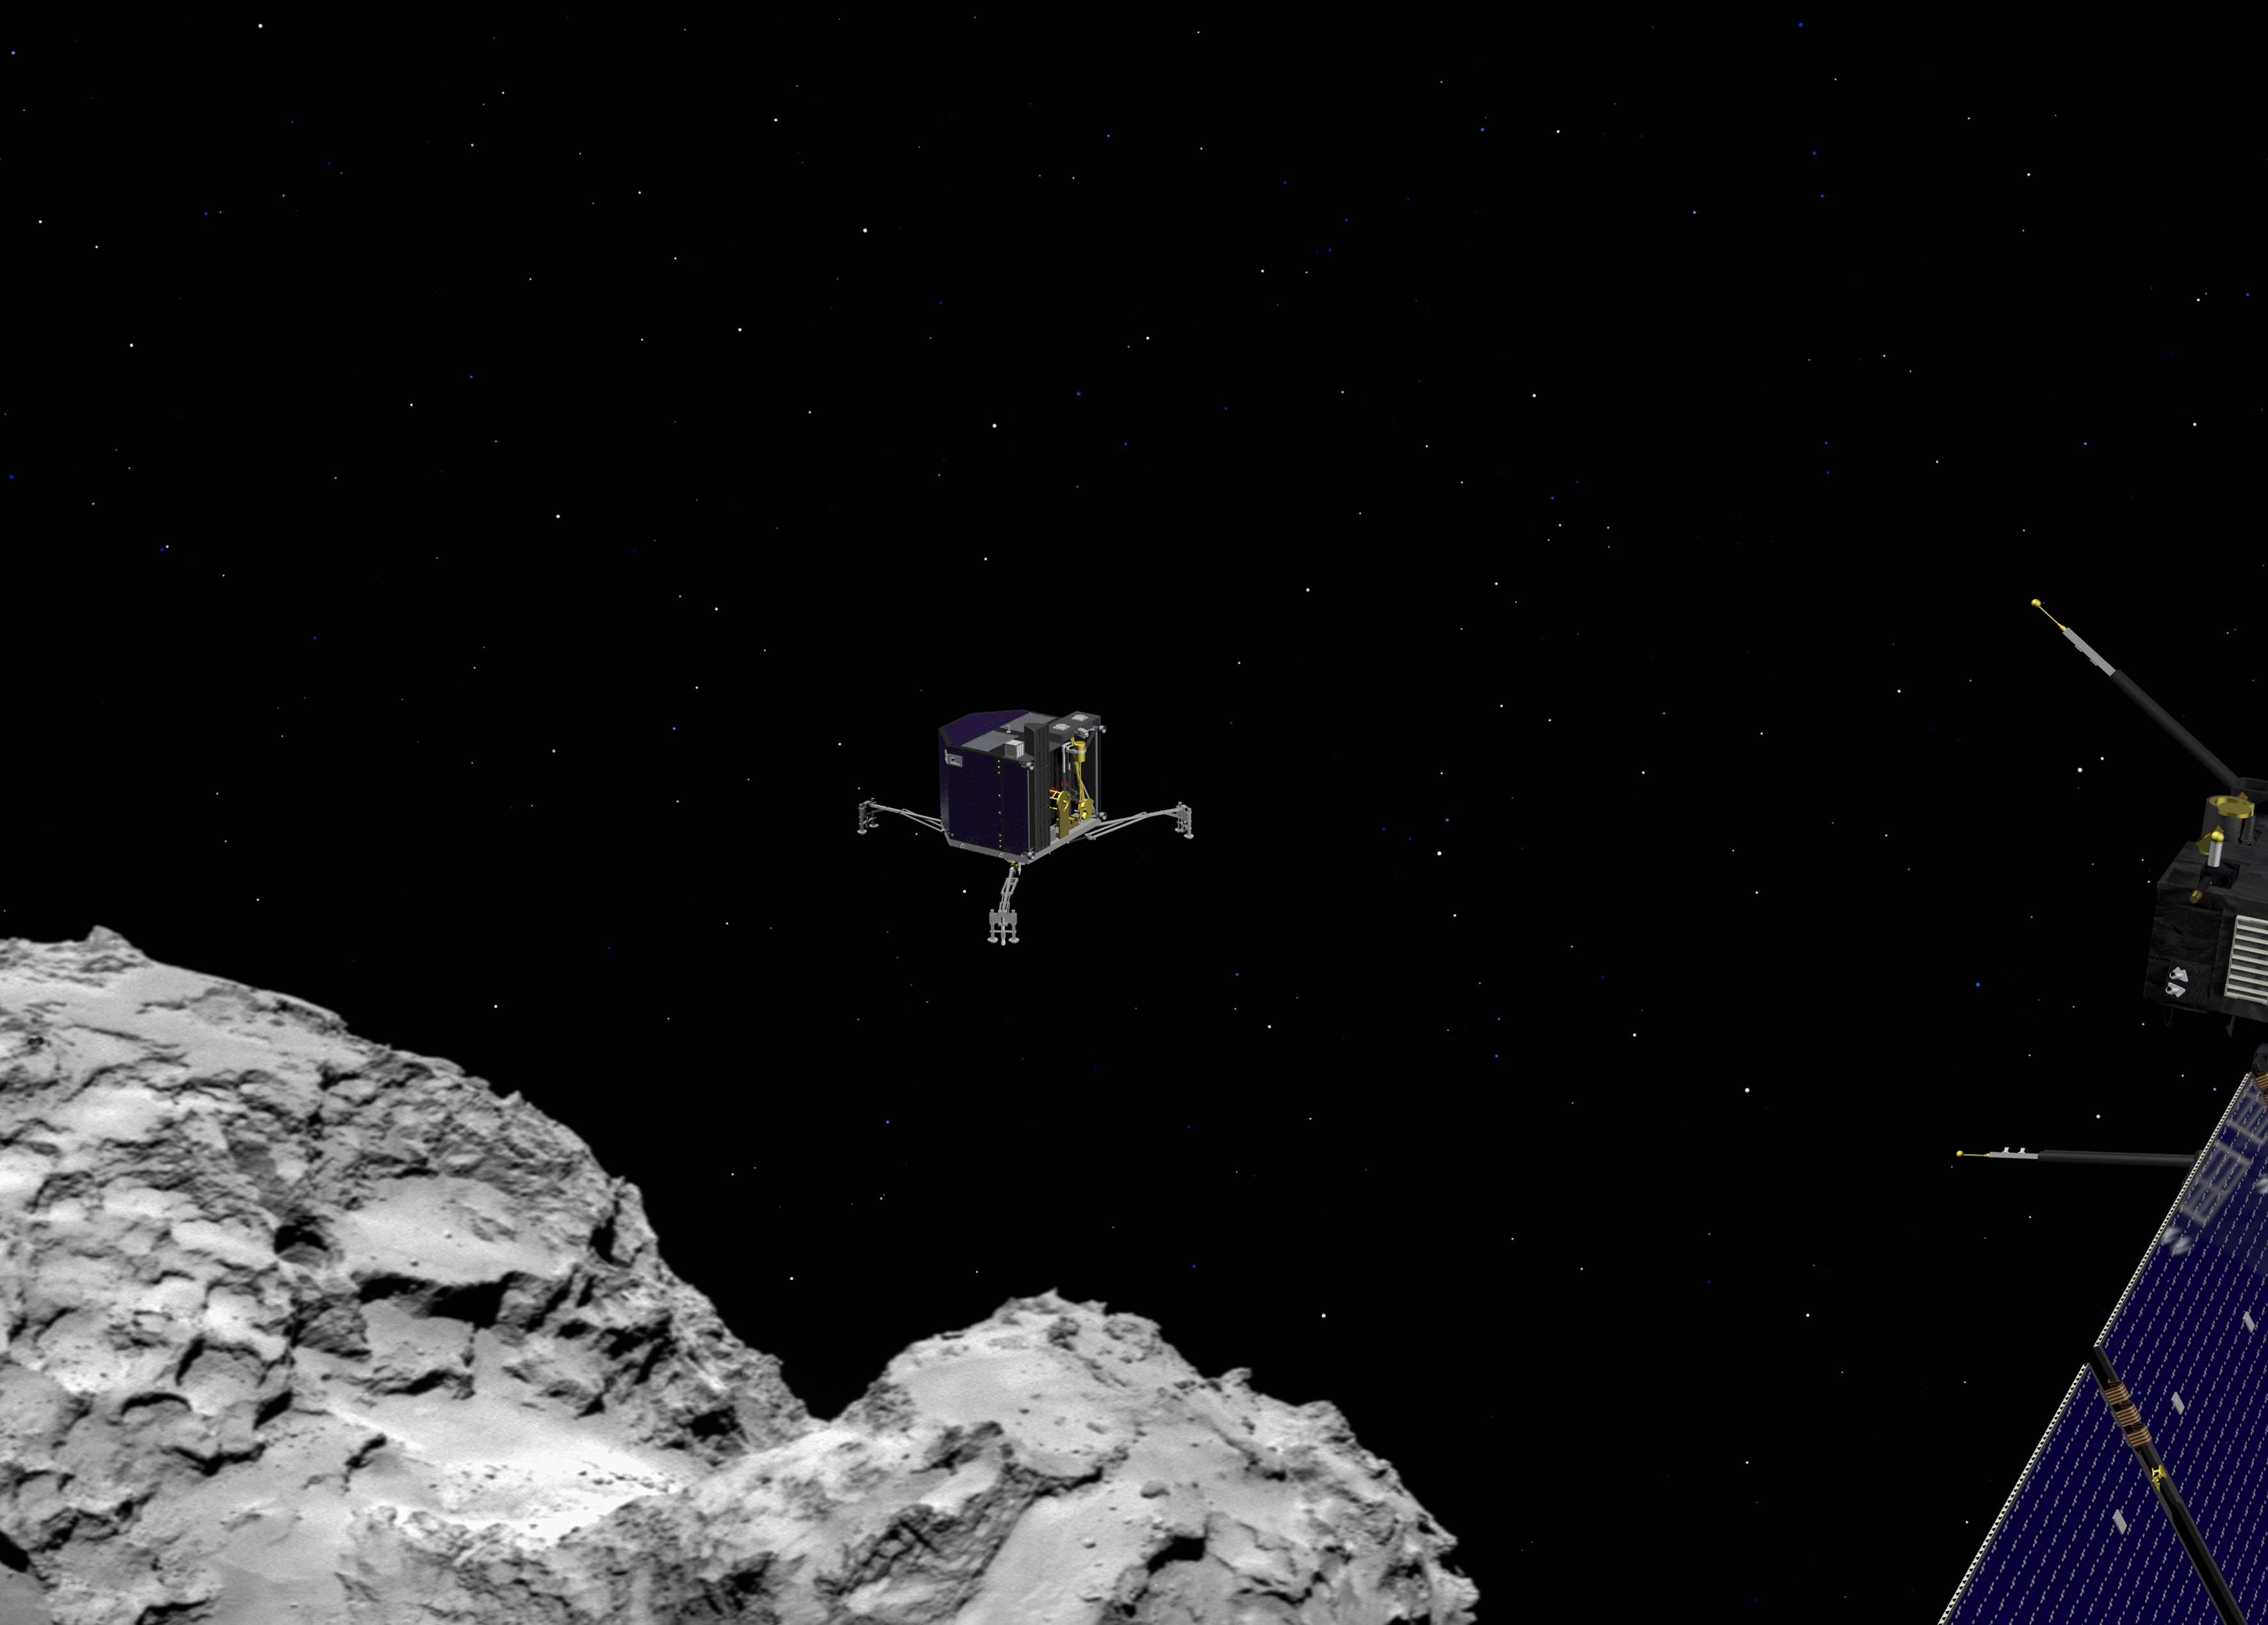 philae found! rosetta space science our activities esa - HD 3543×2539